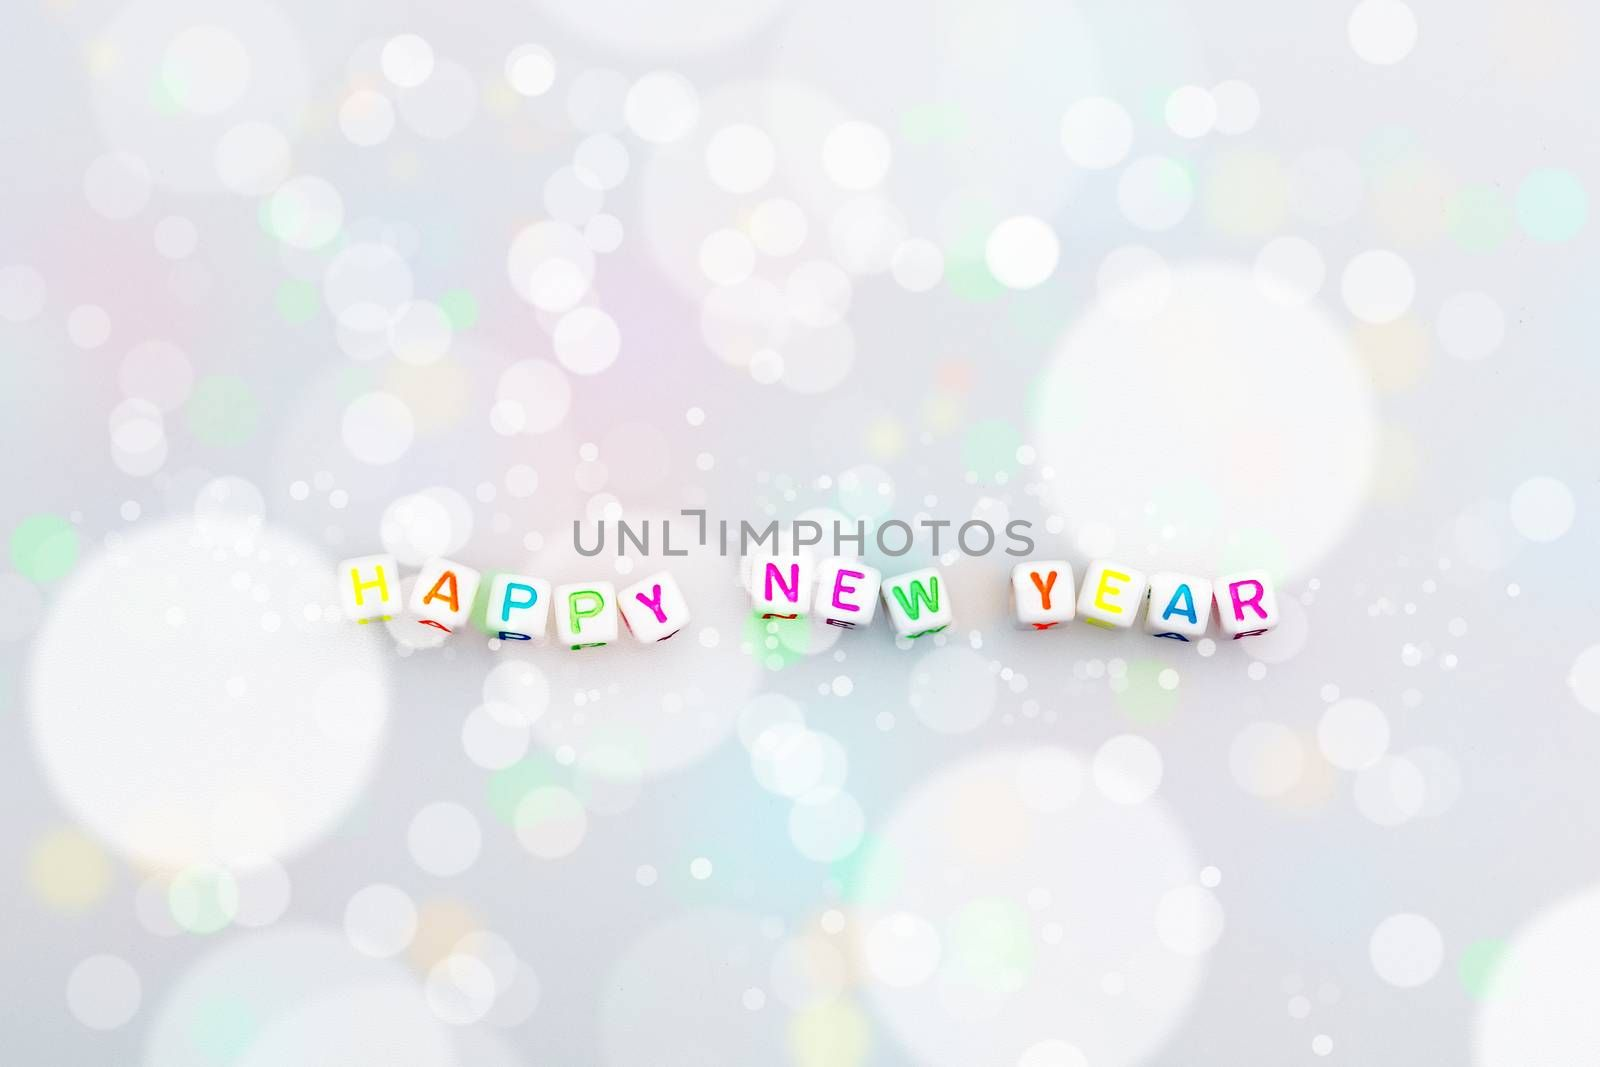 Happy New Year made of acrylic letter bead